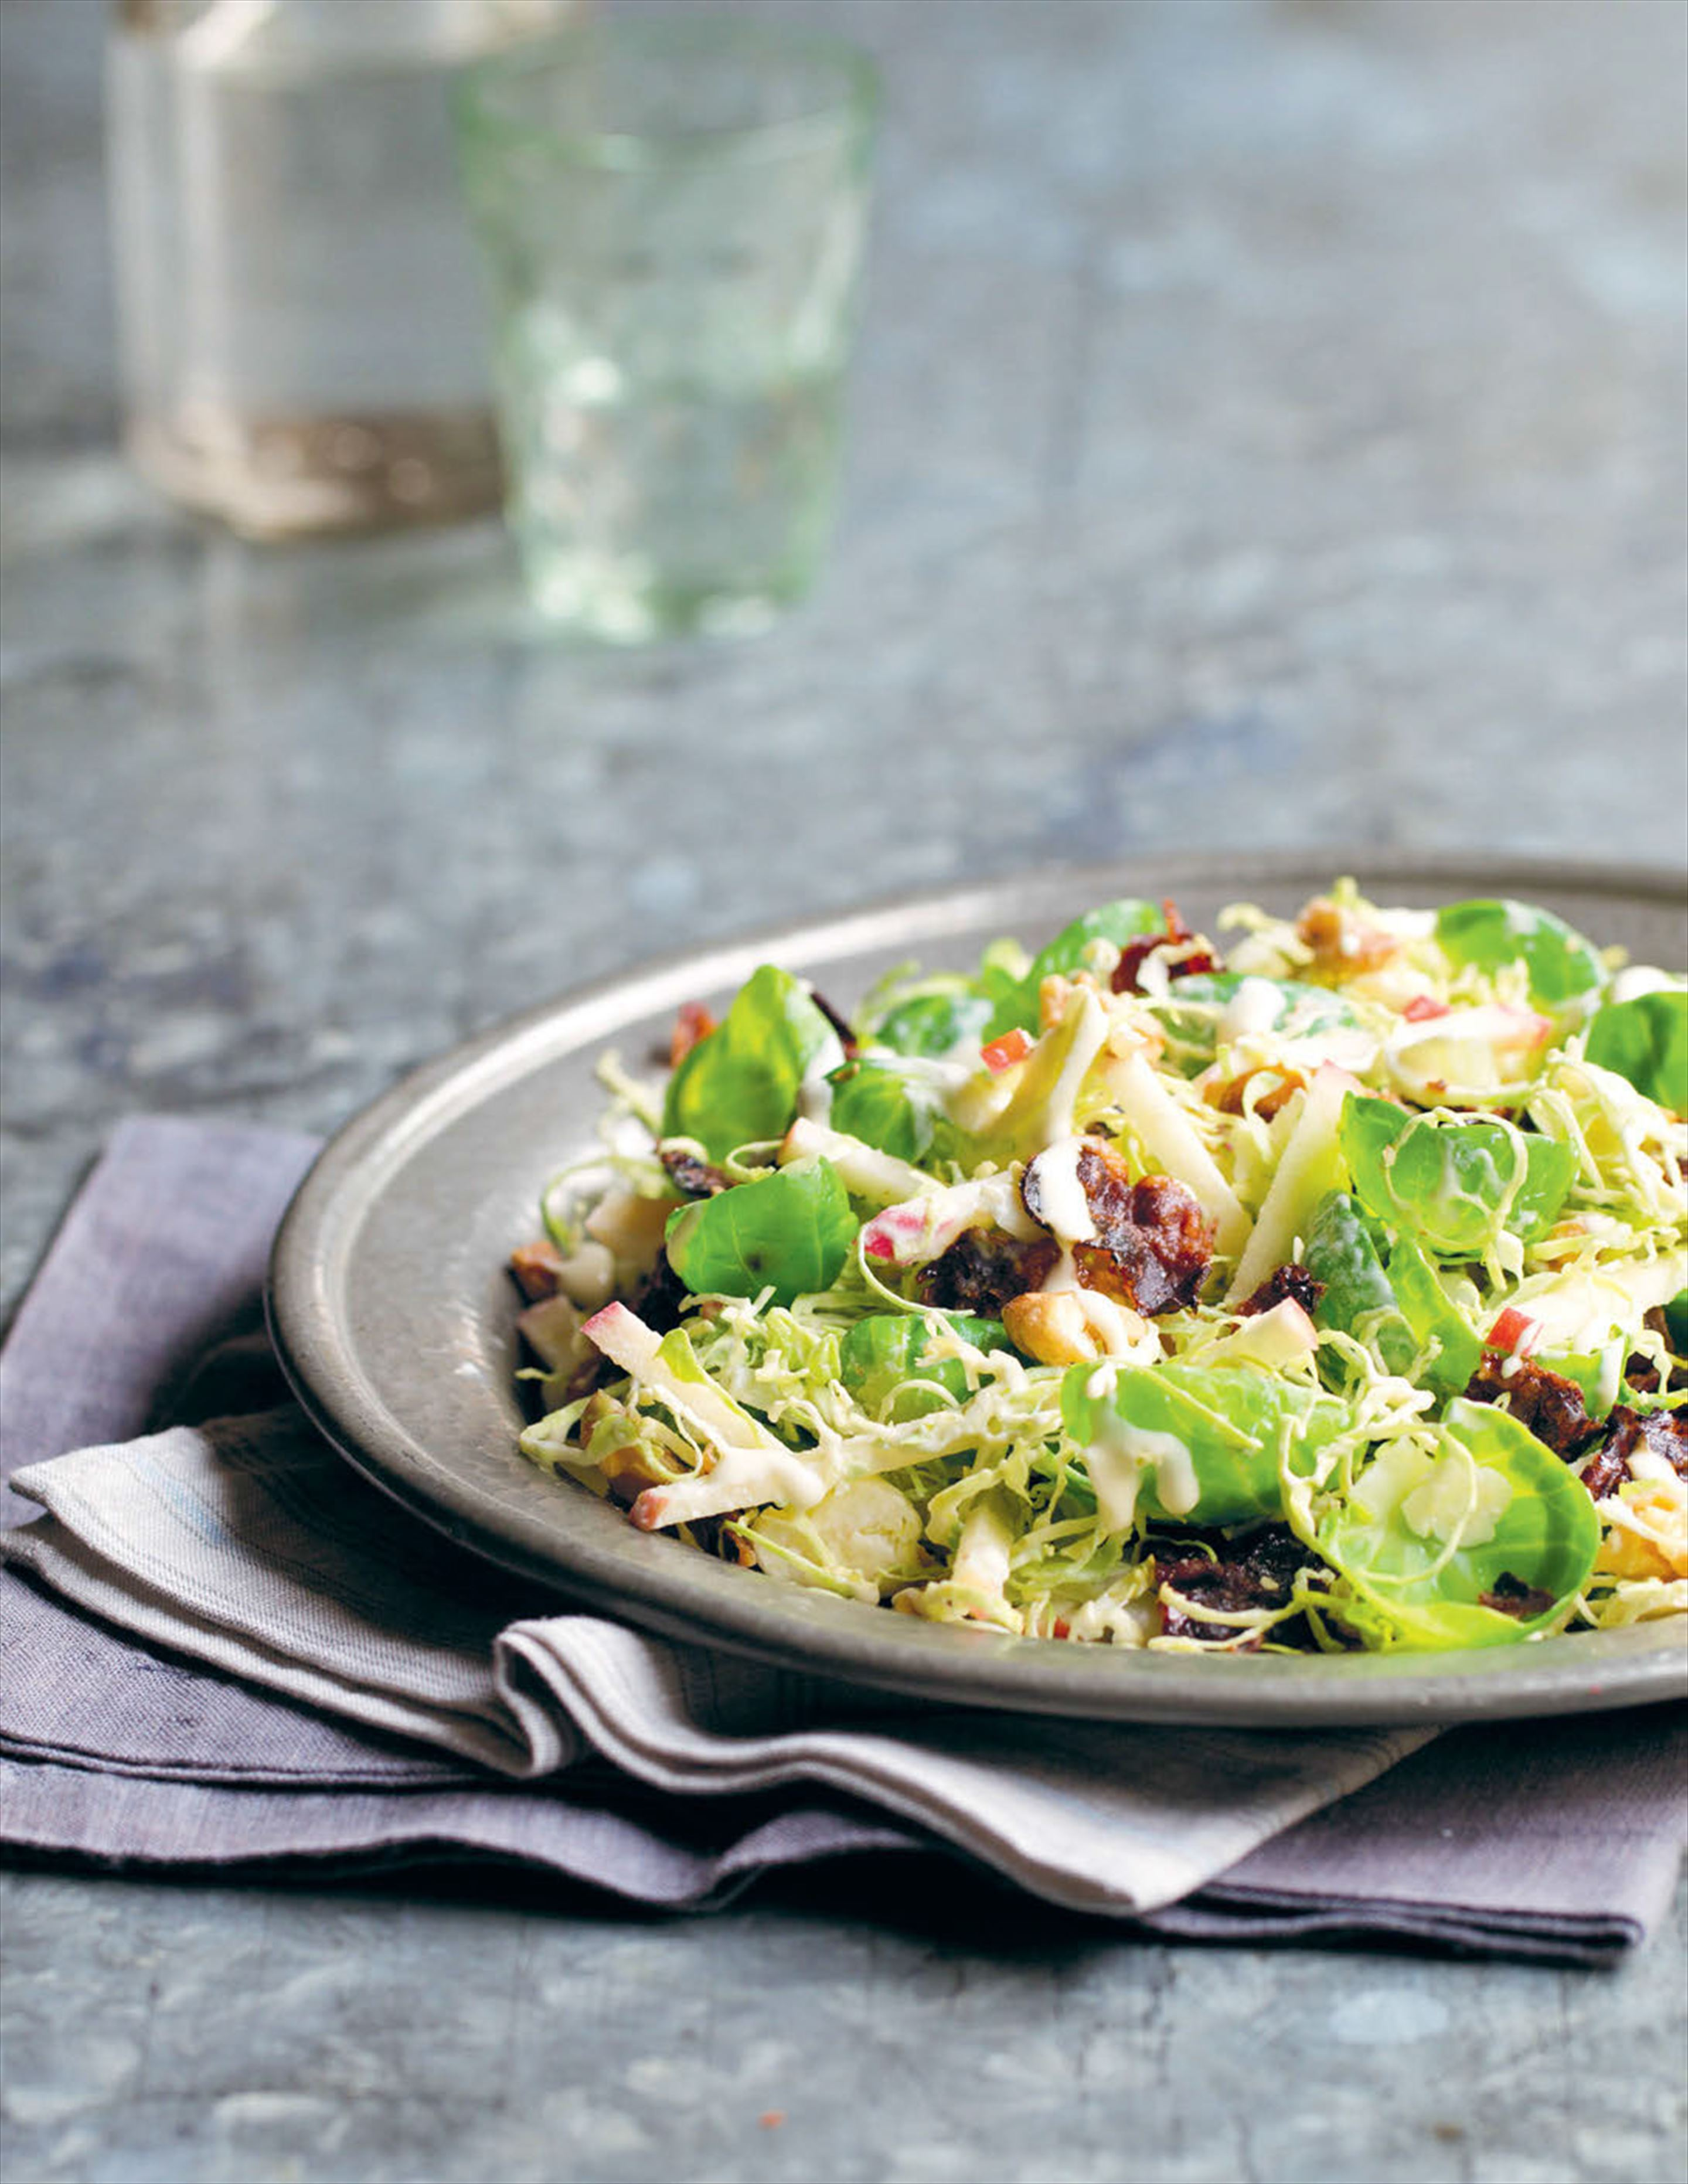 My Waldorf-style salad of brussels sprouts and guanciale